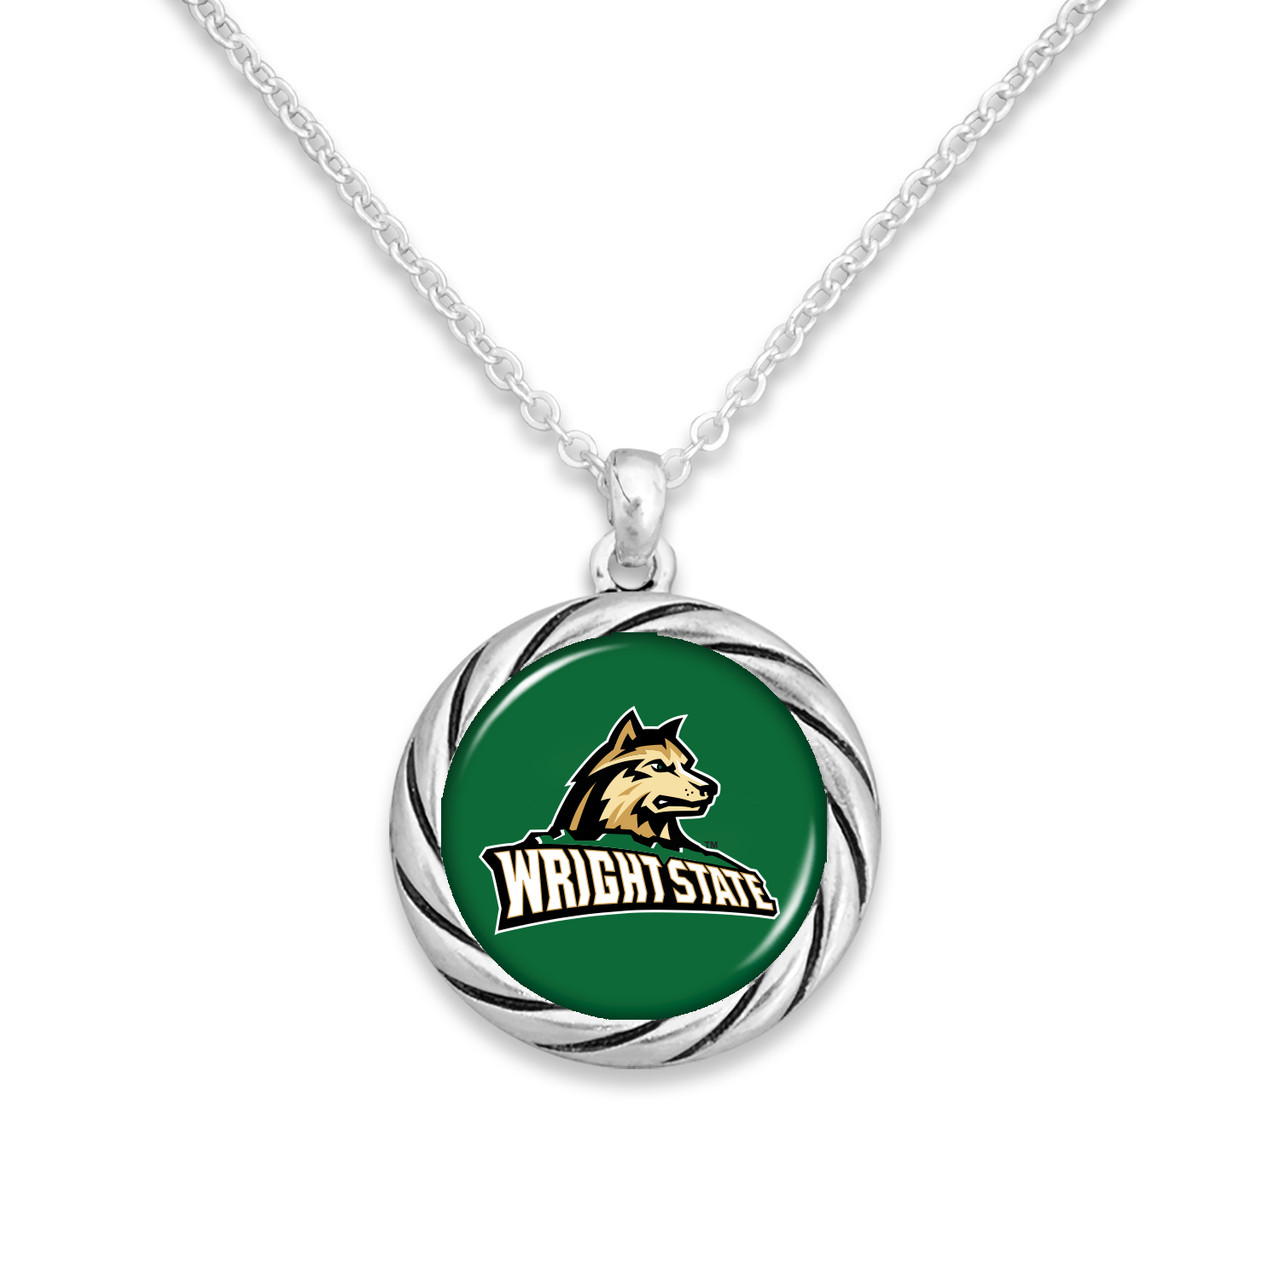 Wright State Raiders Necklace- Twisted Rope